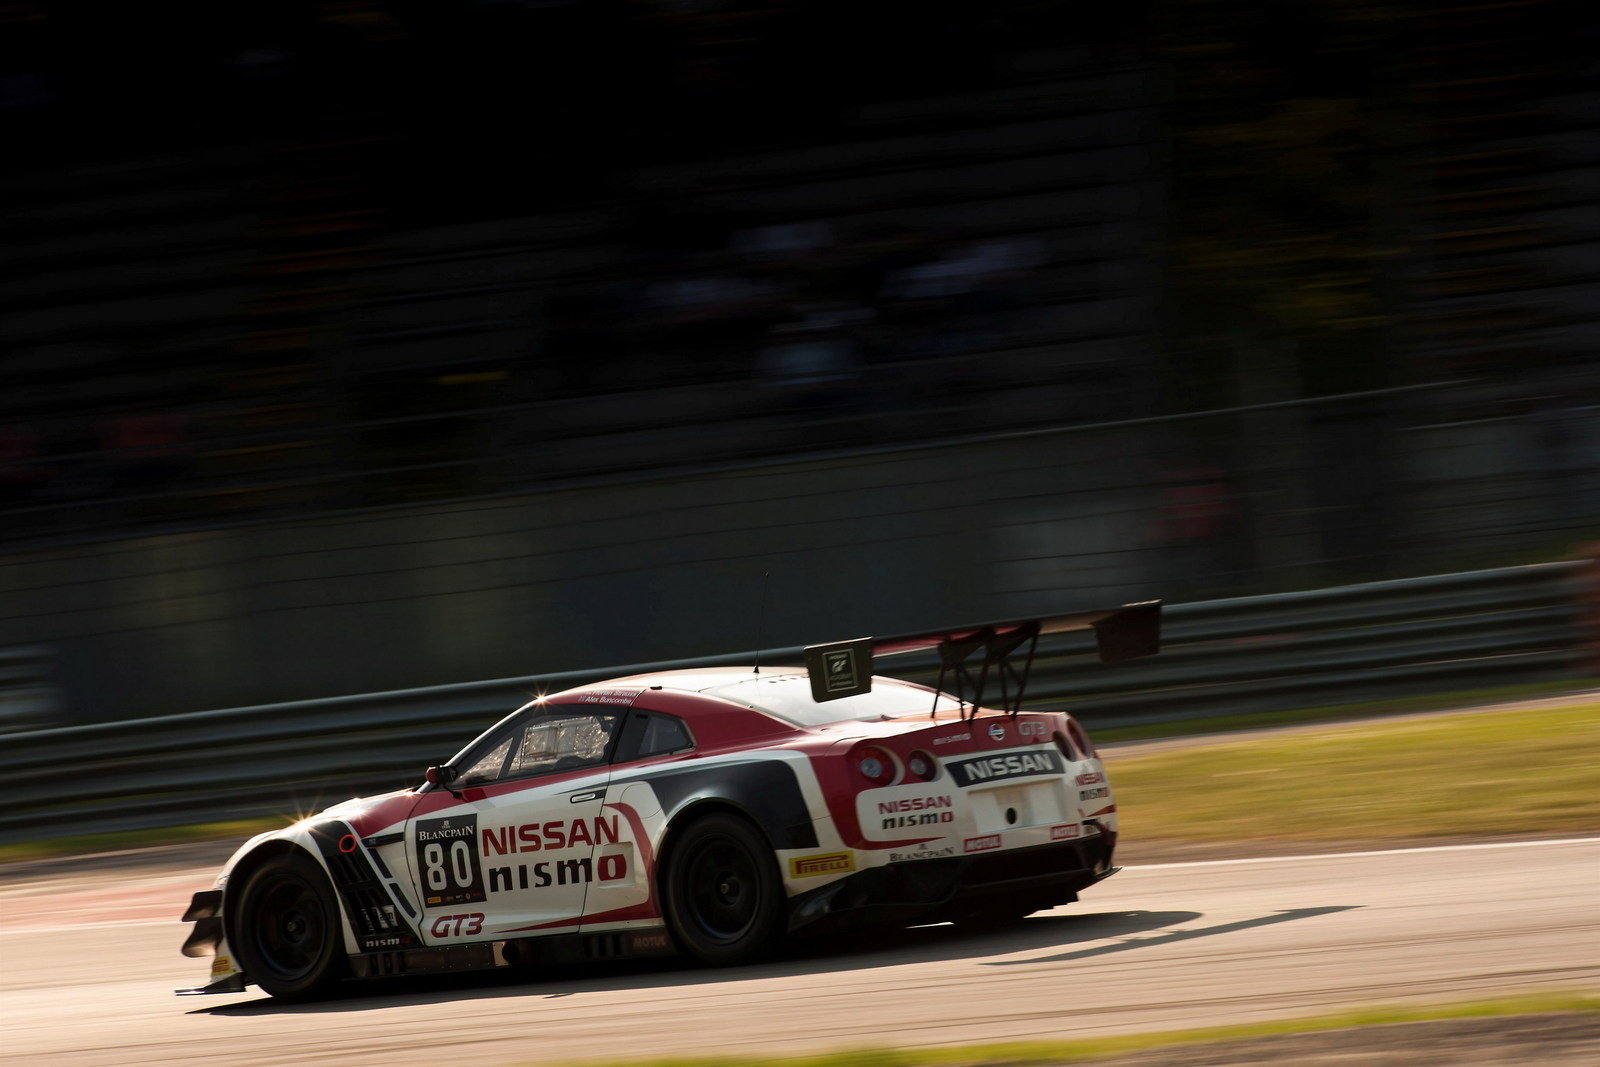 2014 nissan gt r nismo gt3 picture 550888 car review top speed. Black Bedroom Furniture Sets. Home Design Ideas